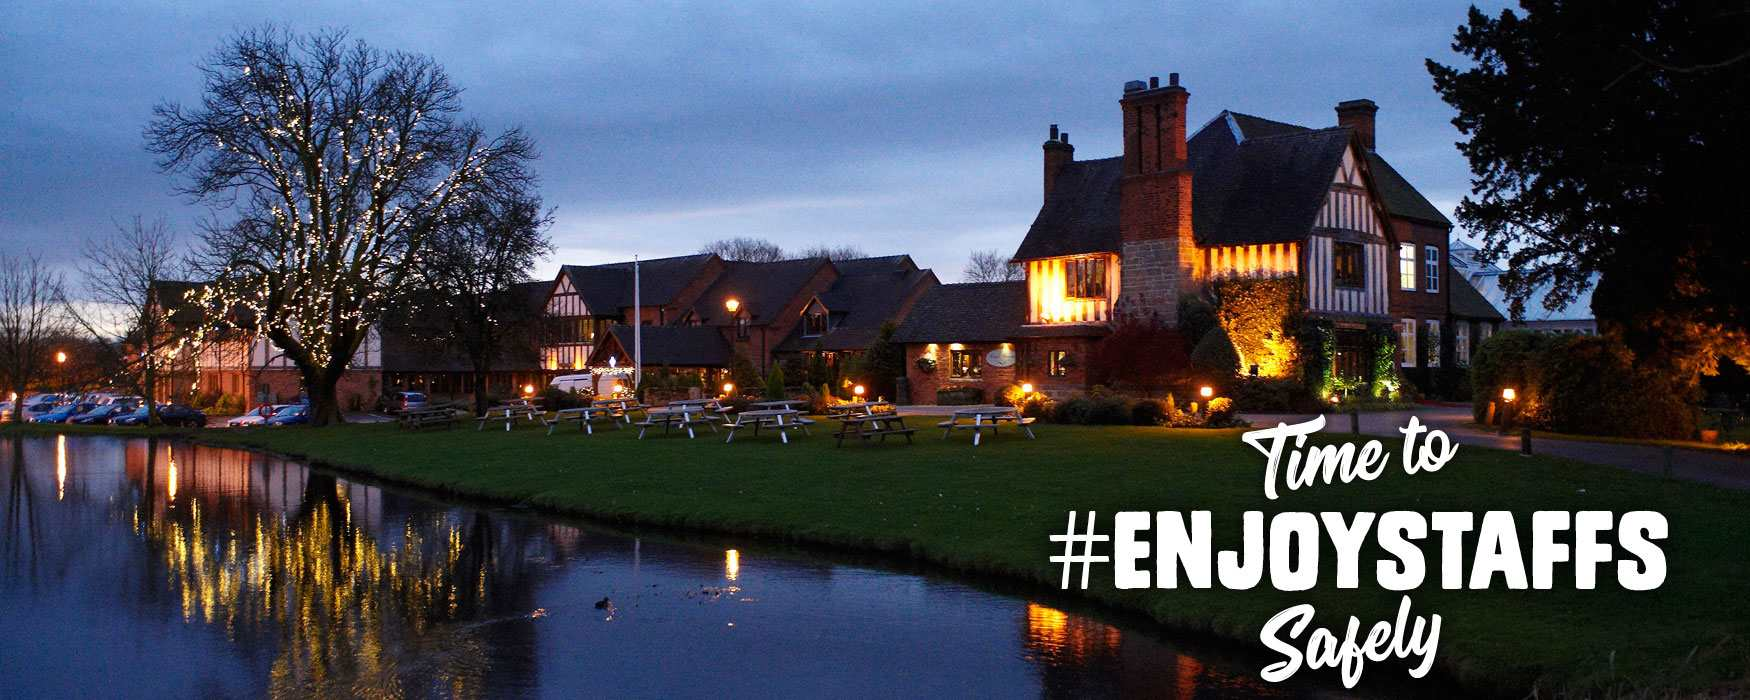 Exterior of The Moat House hotel, Acton Trussell, Staffordshire at dusk. #EnjoyStaffsSafely